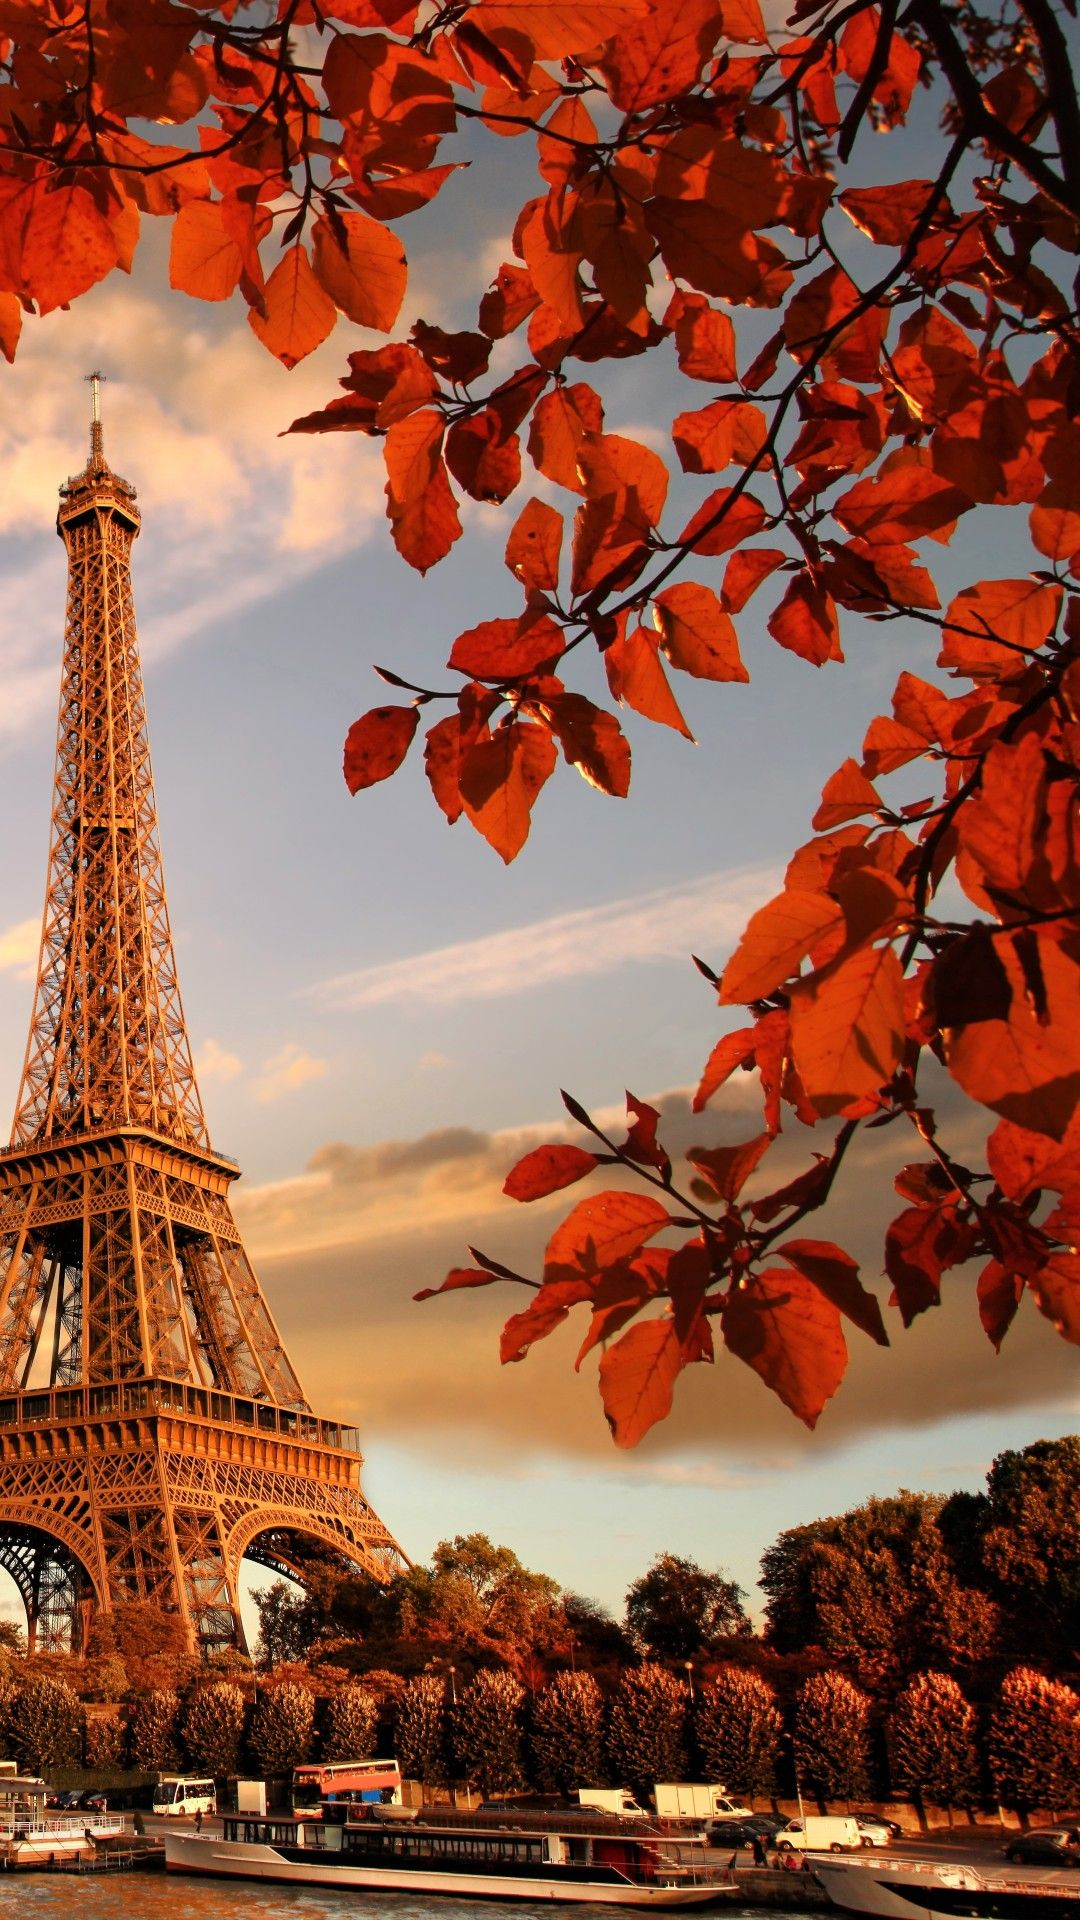 Eiffel Tower In Autumn France Paris Tap To See More Of The Most Romantic Paris City Beautiful Wallpapers Backgrounds Paris Wallpaper Paris Wallpaper Iphone